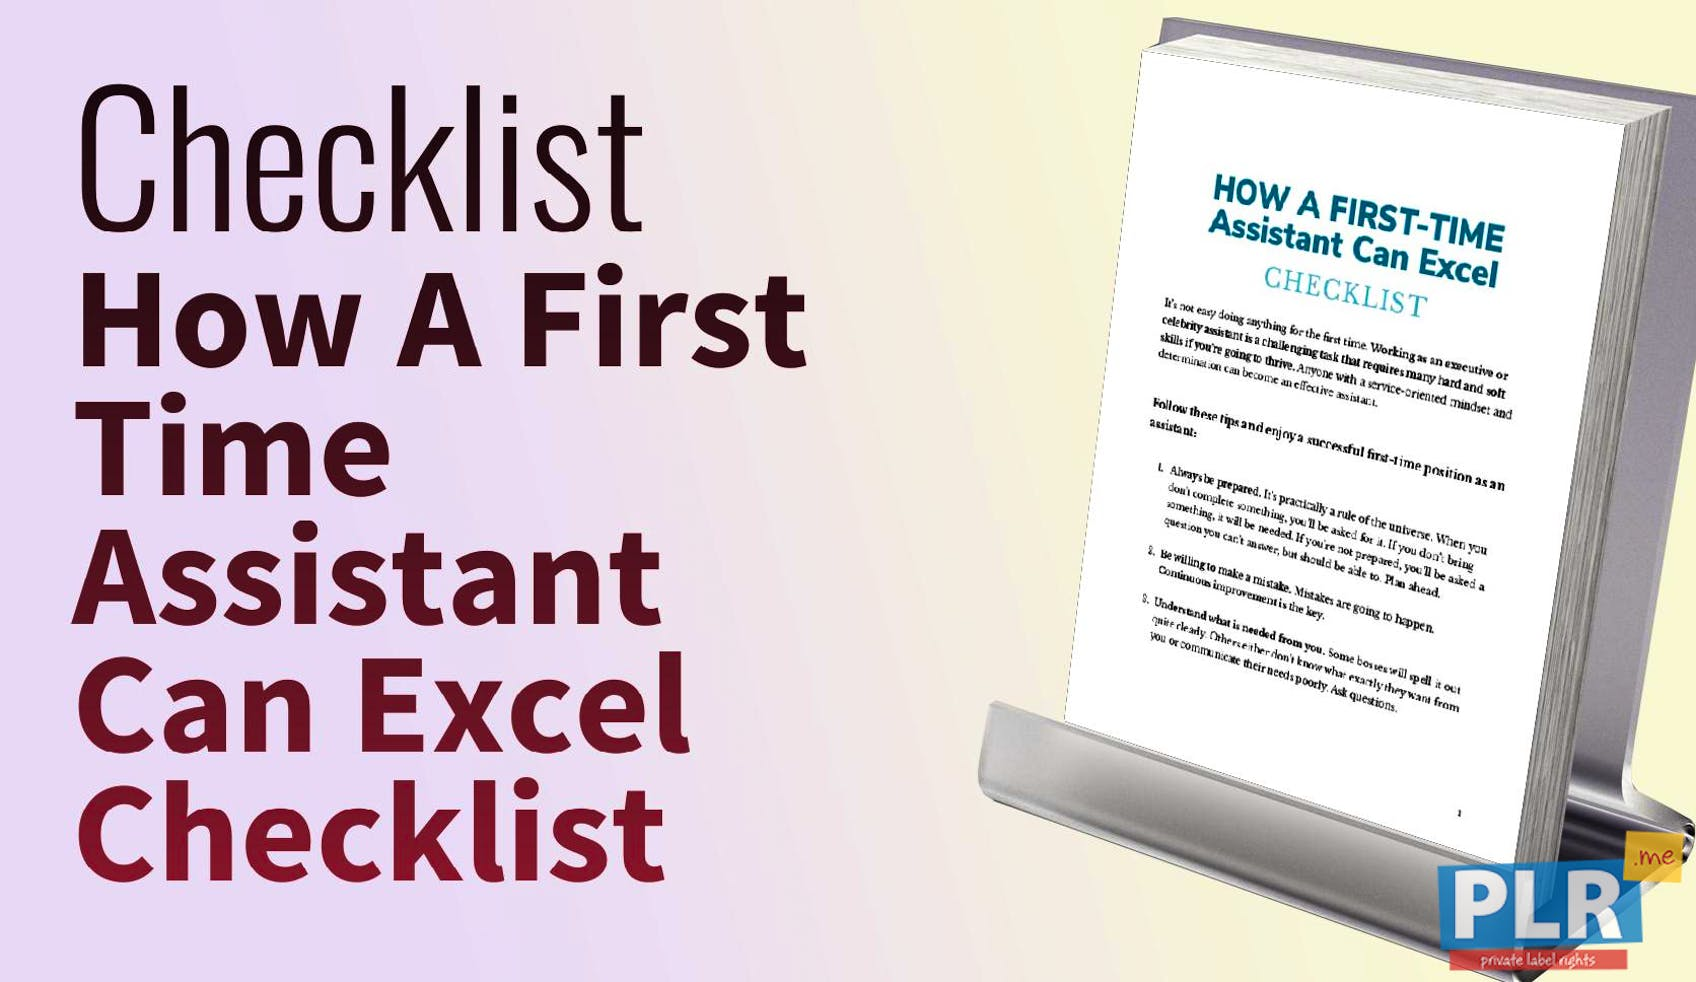 How A First Time Assistant Can Excel Checklist